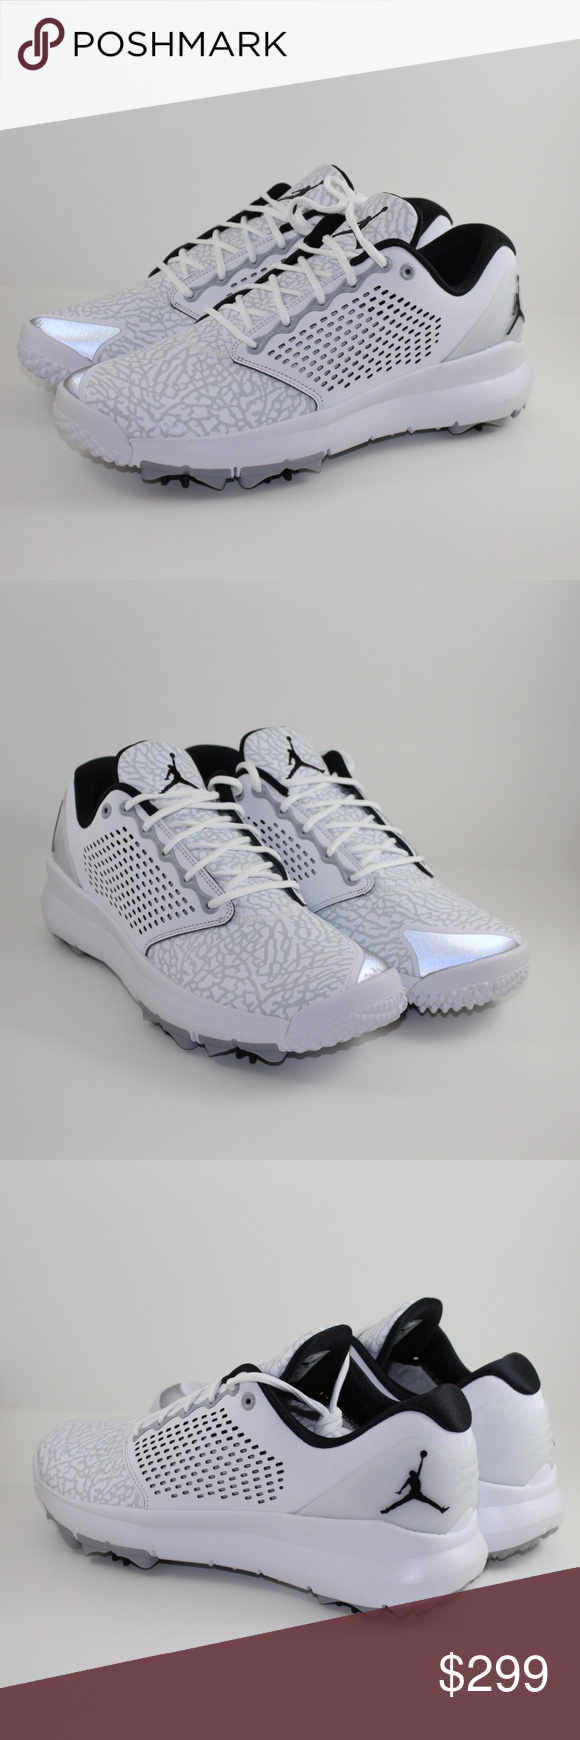 91a86d7161e6 Nike Air Jordan Trainer ST G Golf Shoe Nike Air Jordan Trainer ST G Golf  Shoe White Black Wolf Grey Nike Ser.  AH7747-100 Brand New Golf Shoes  without the ...